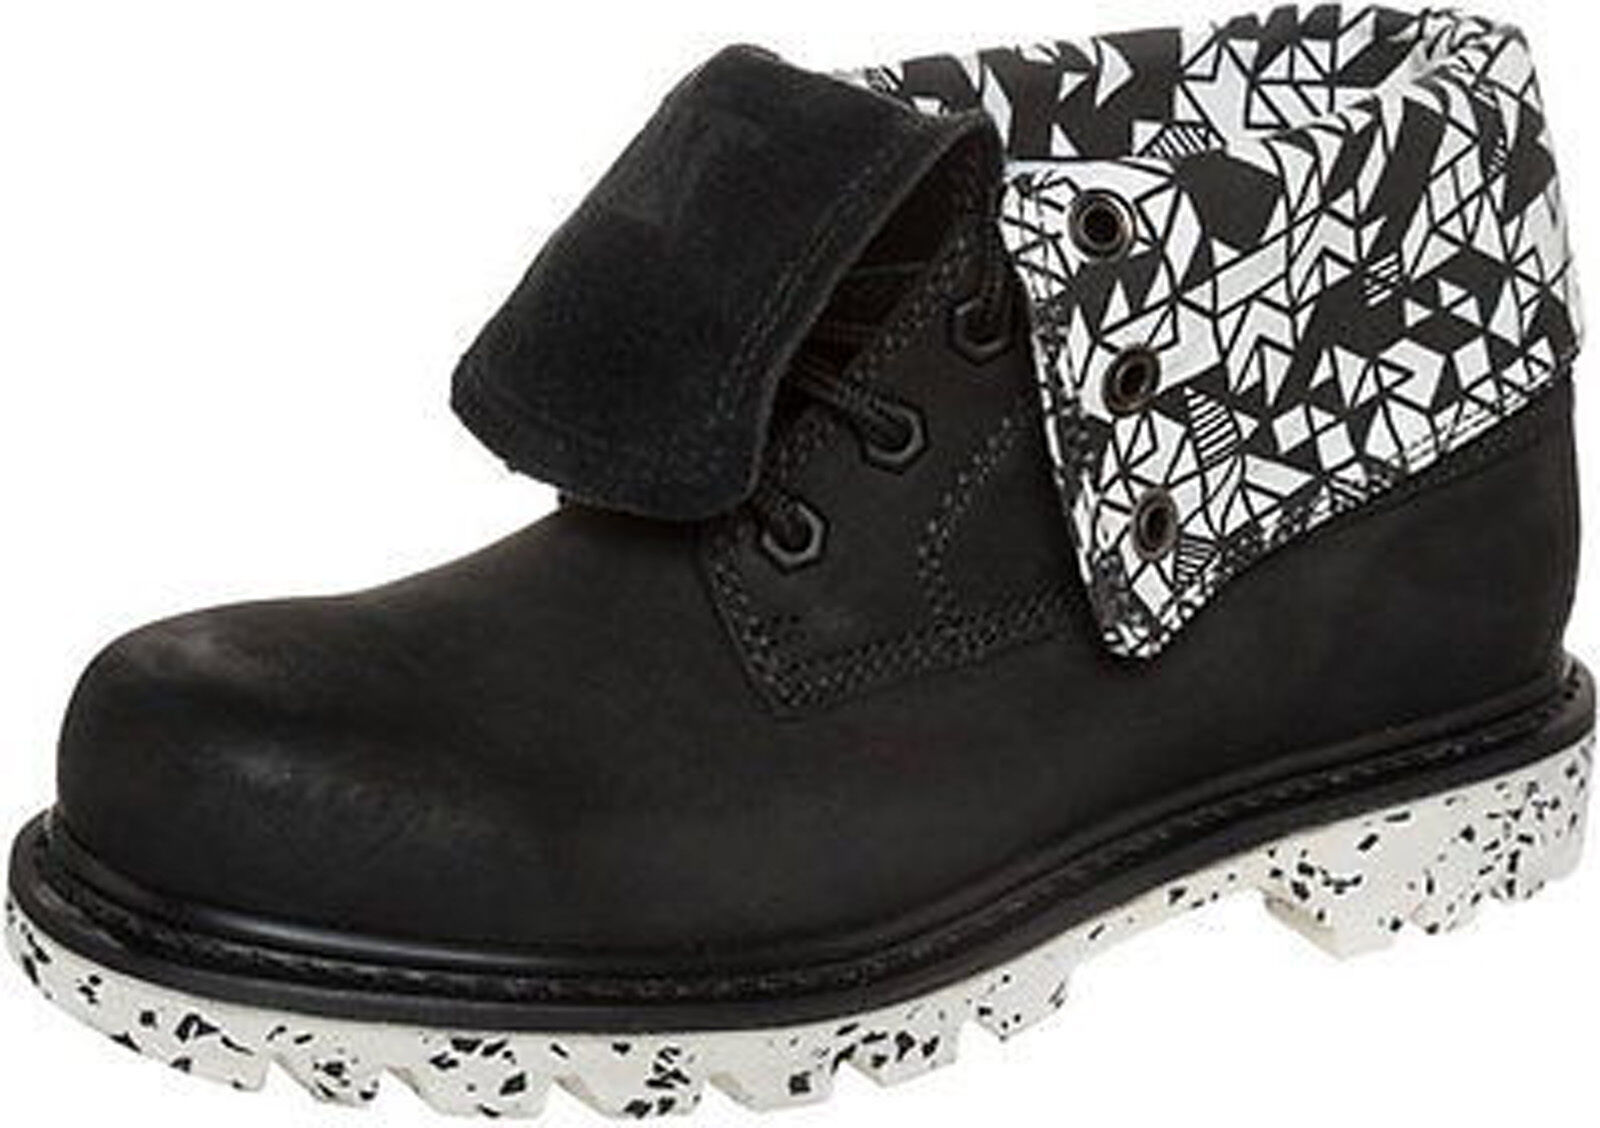 CAT Caterpillar Colorado Black Walala RD Roll Down Womens Ankle Boots Size  3-8 2af560d0ae